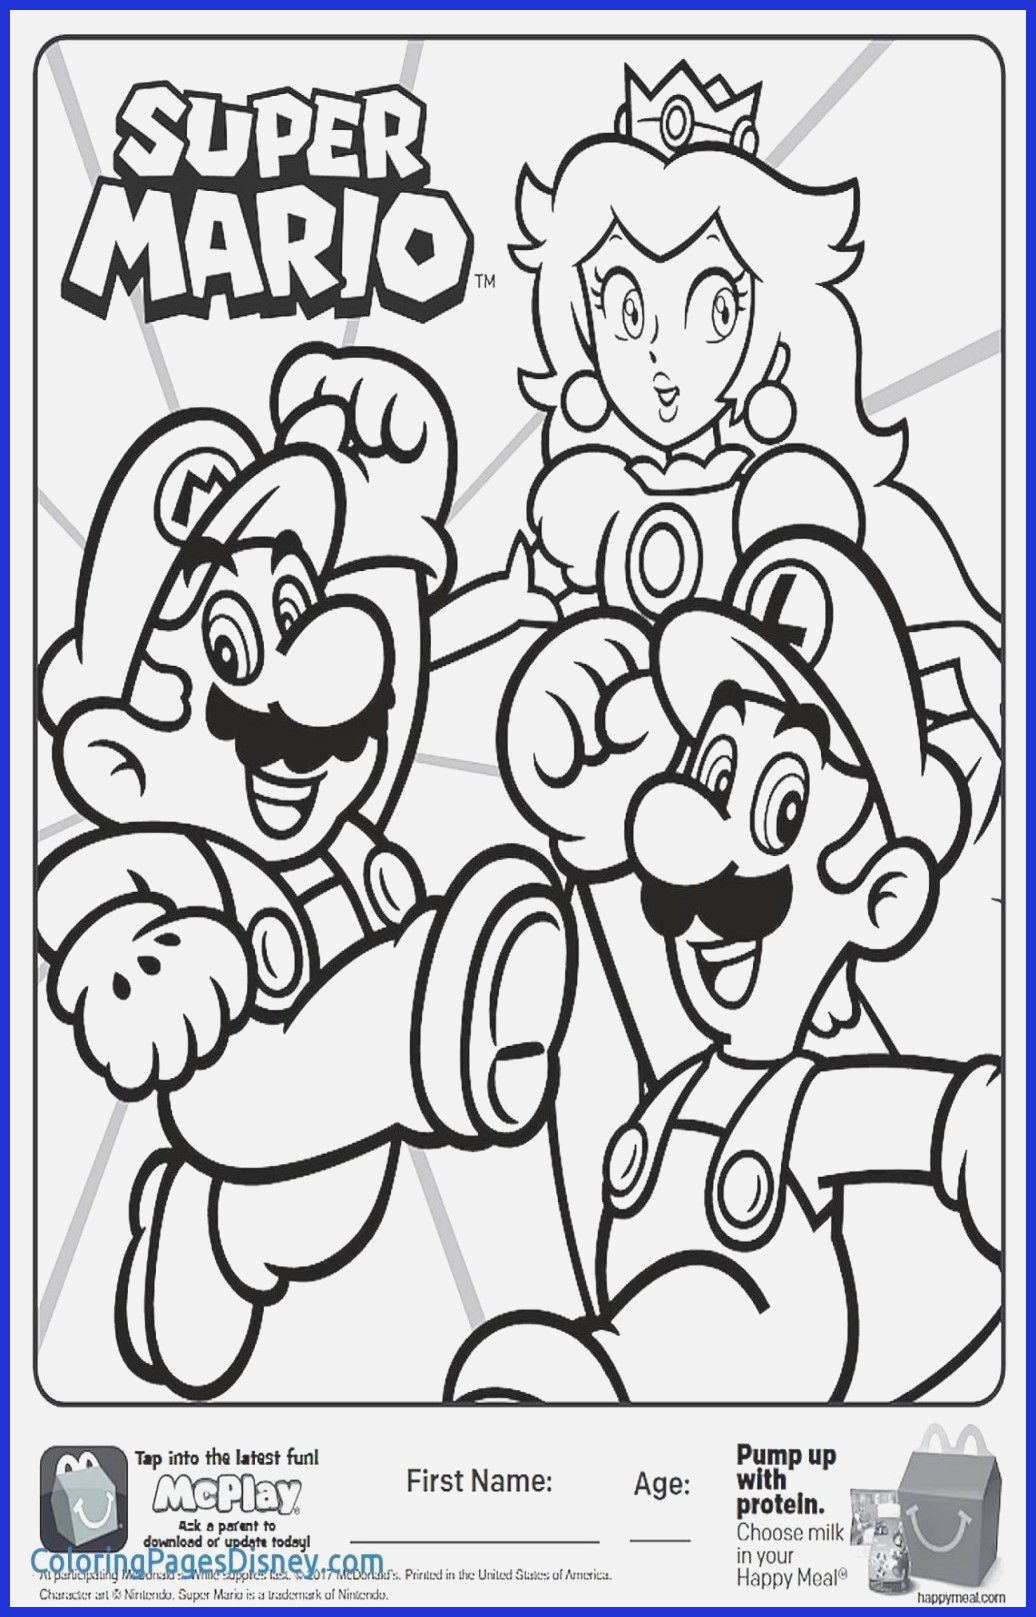 Jesus Christmas Coloring Pages Nickelodeon Thanksgiving Coloring Pages Religious Christmas Coloring